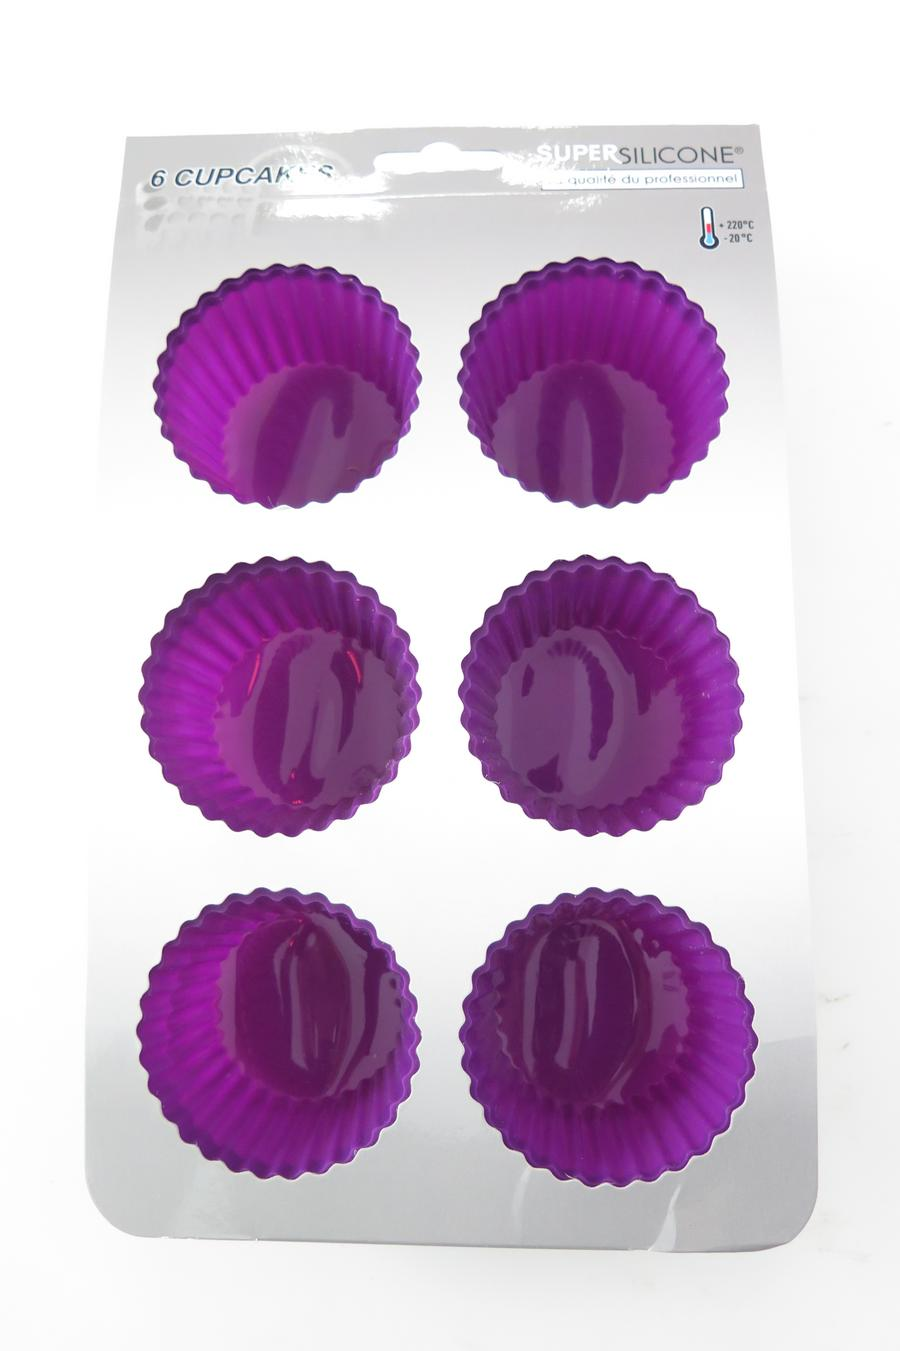 MOULE SILICONE 6 CUPCAKES